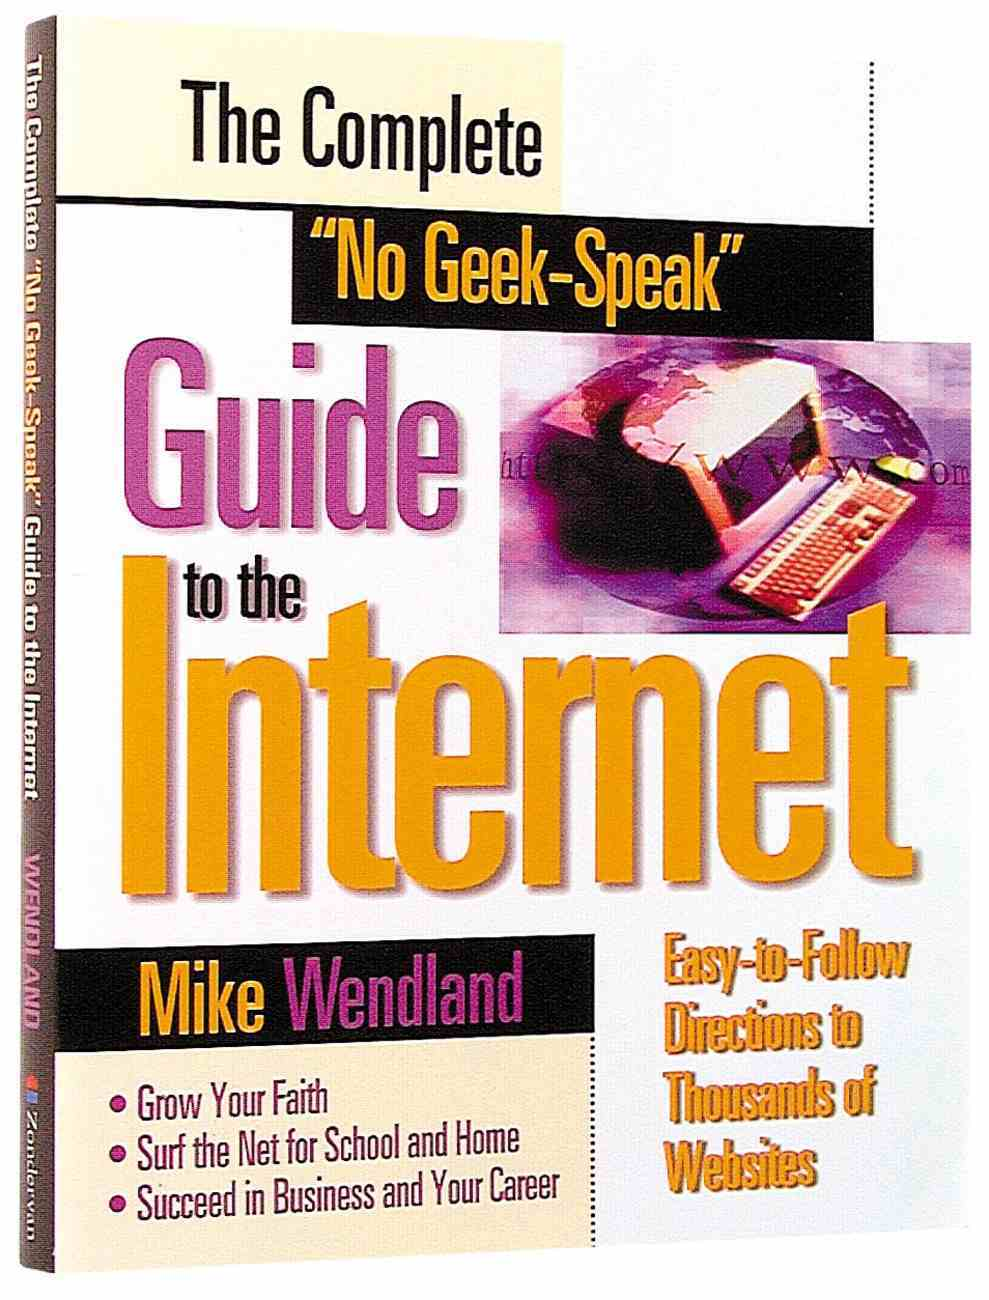 The Complete No Geek-Speak Guide to the Internet Paperback